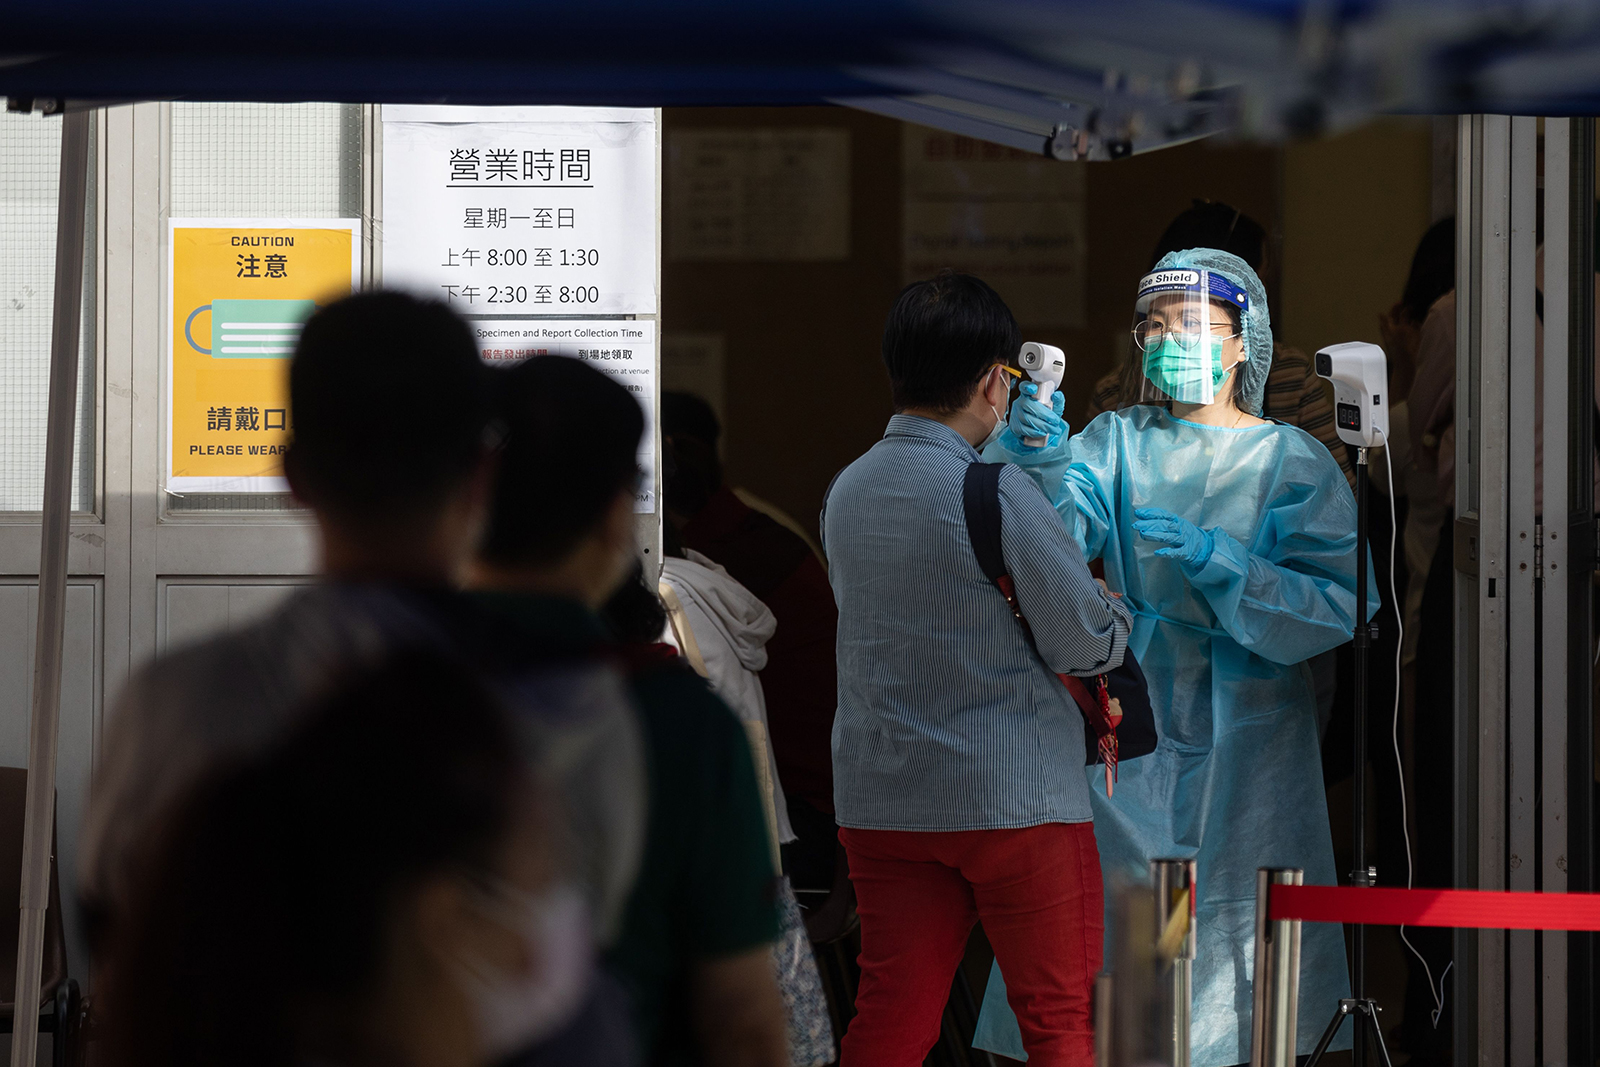 A health worker in protective gown checks the temperatures of visitors entering a community testing center in Hong Kong, on November 21.